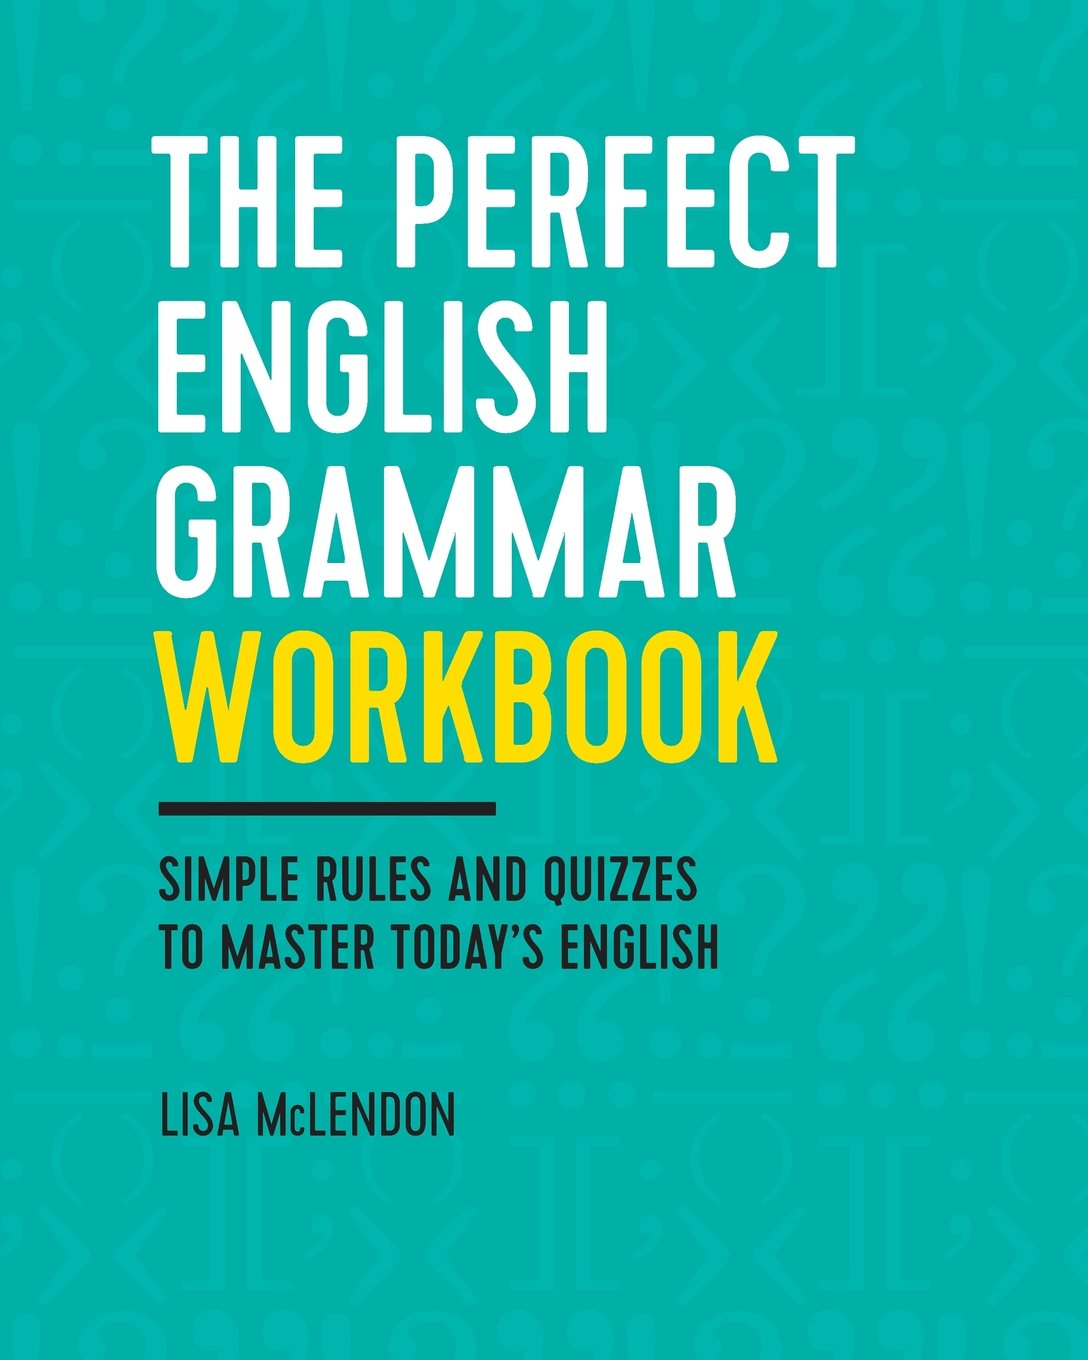 Workbooks english grammar workbook for dummies pdf free download : The Perfect English Grammar Workbook: Simple Rules and Quizzes to ...